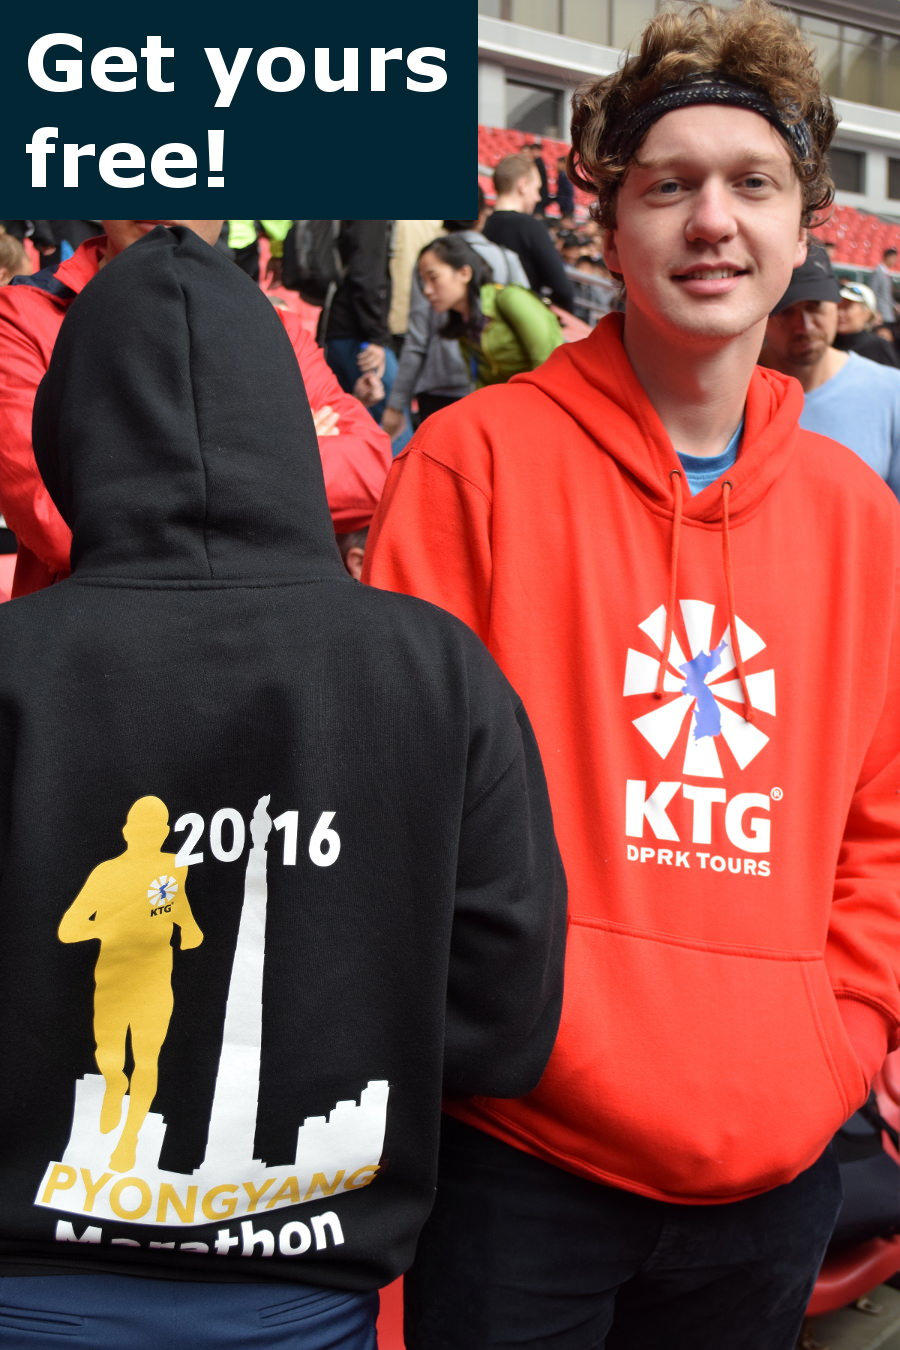 Get a free Pyongyang Marathon hoody designed by KTG